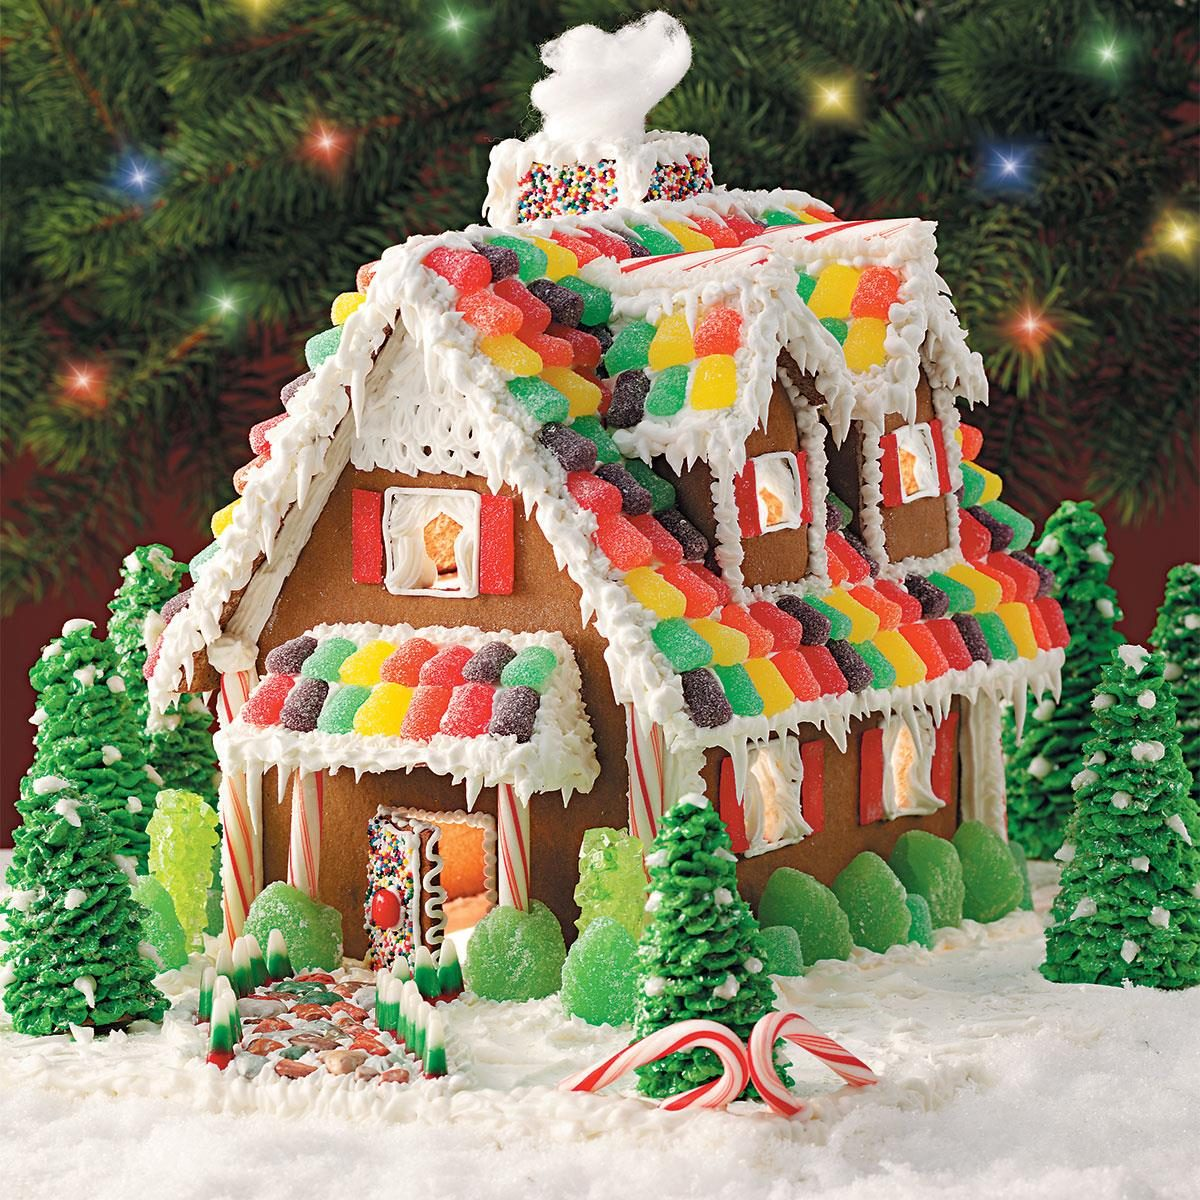 Gingerbread House History and Types of Gingerbread Houses